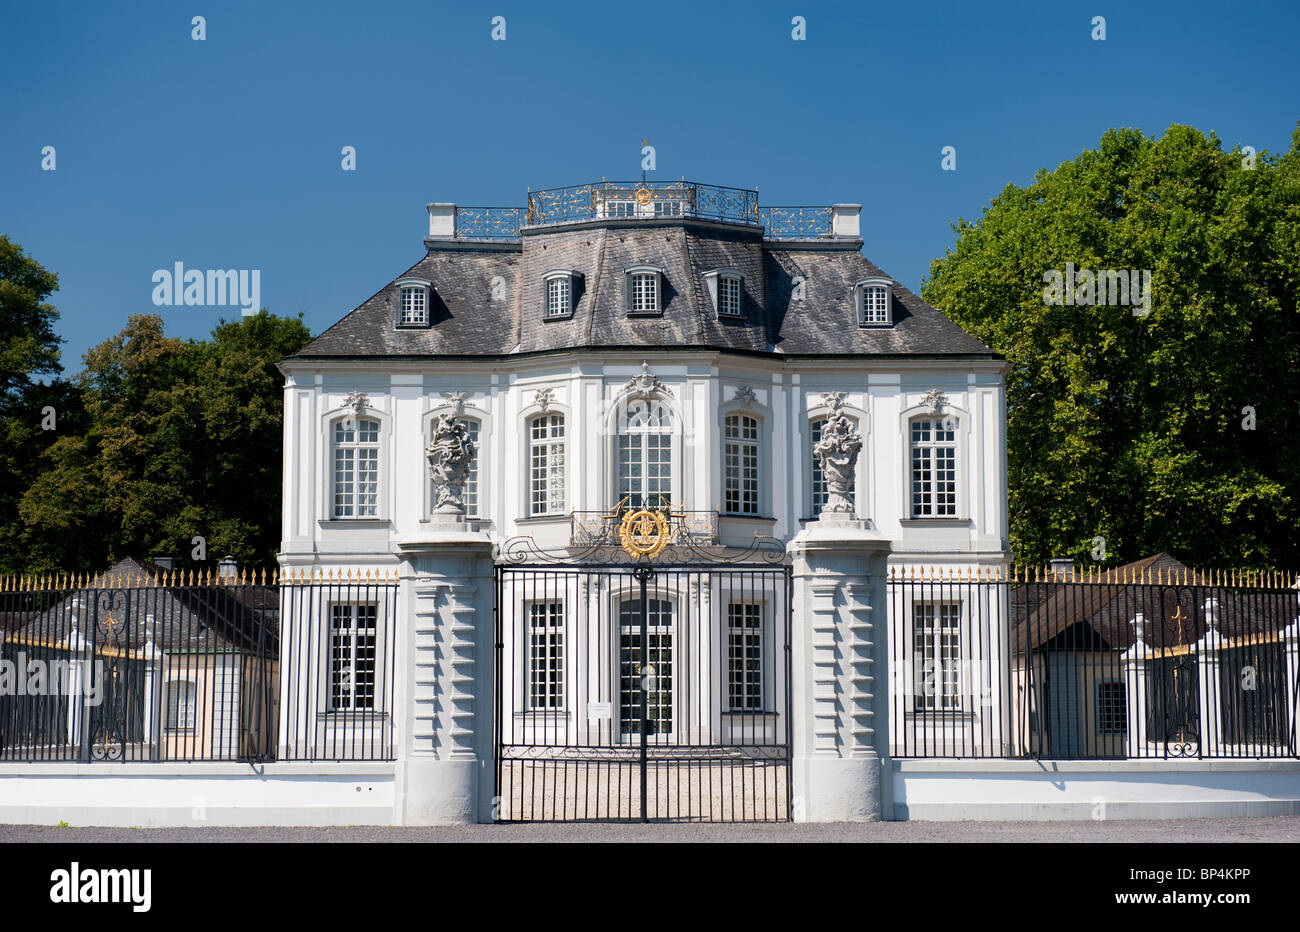 Schloss Falkenlust in Brühl, a palace for Falconry - Stock Image